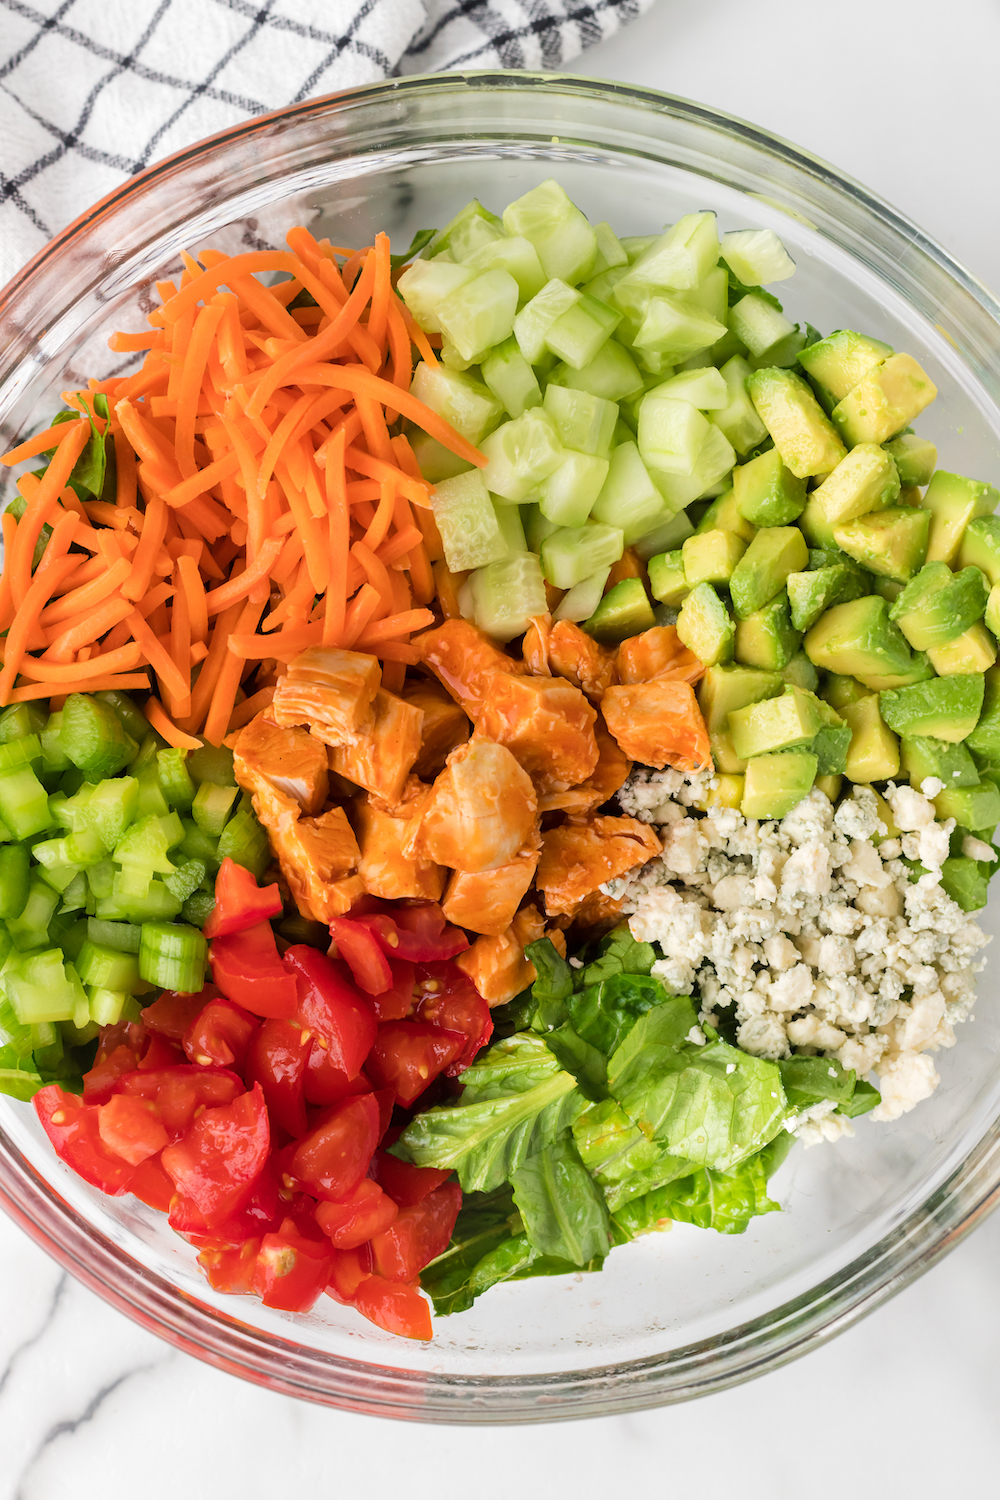 Ingredients needed to make Buffalo Chicken Chopped Salad